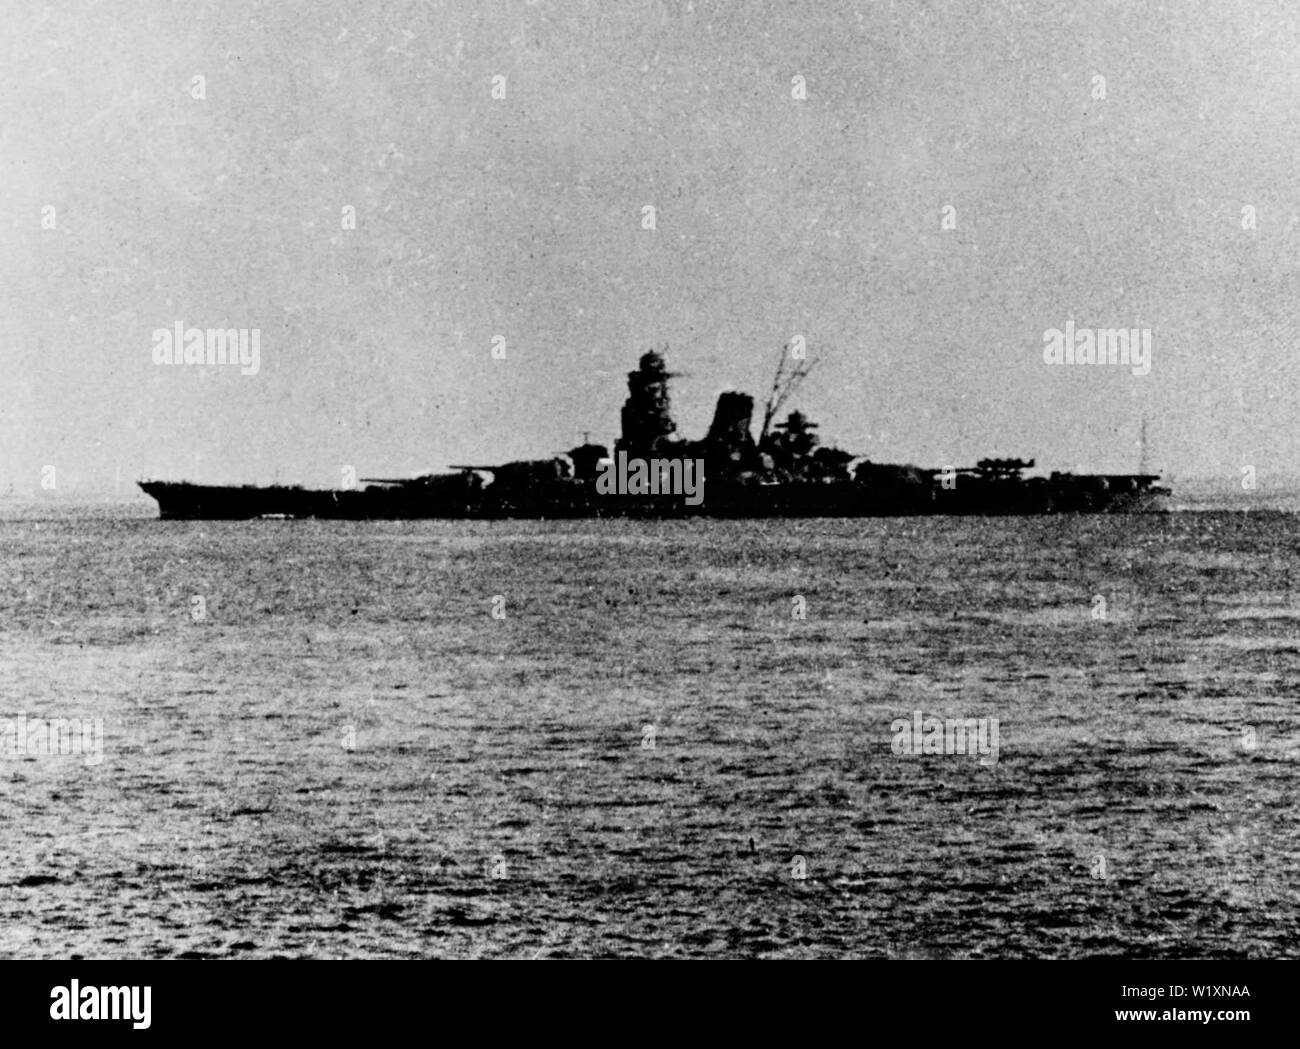 Musashi departing Brunei in October 1944 for the Battle of Leyte Gulf - Stock Image